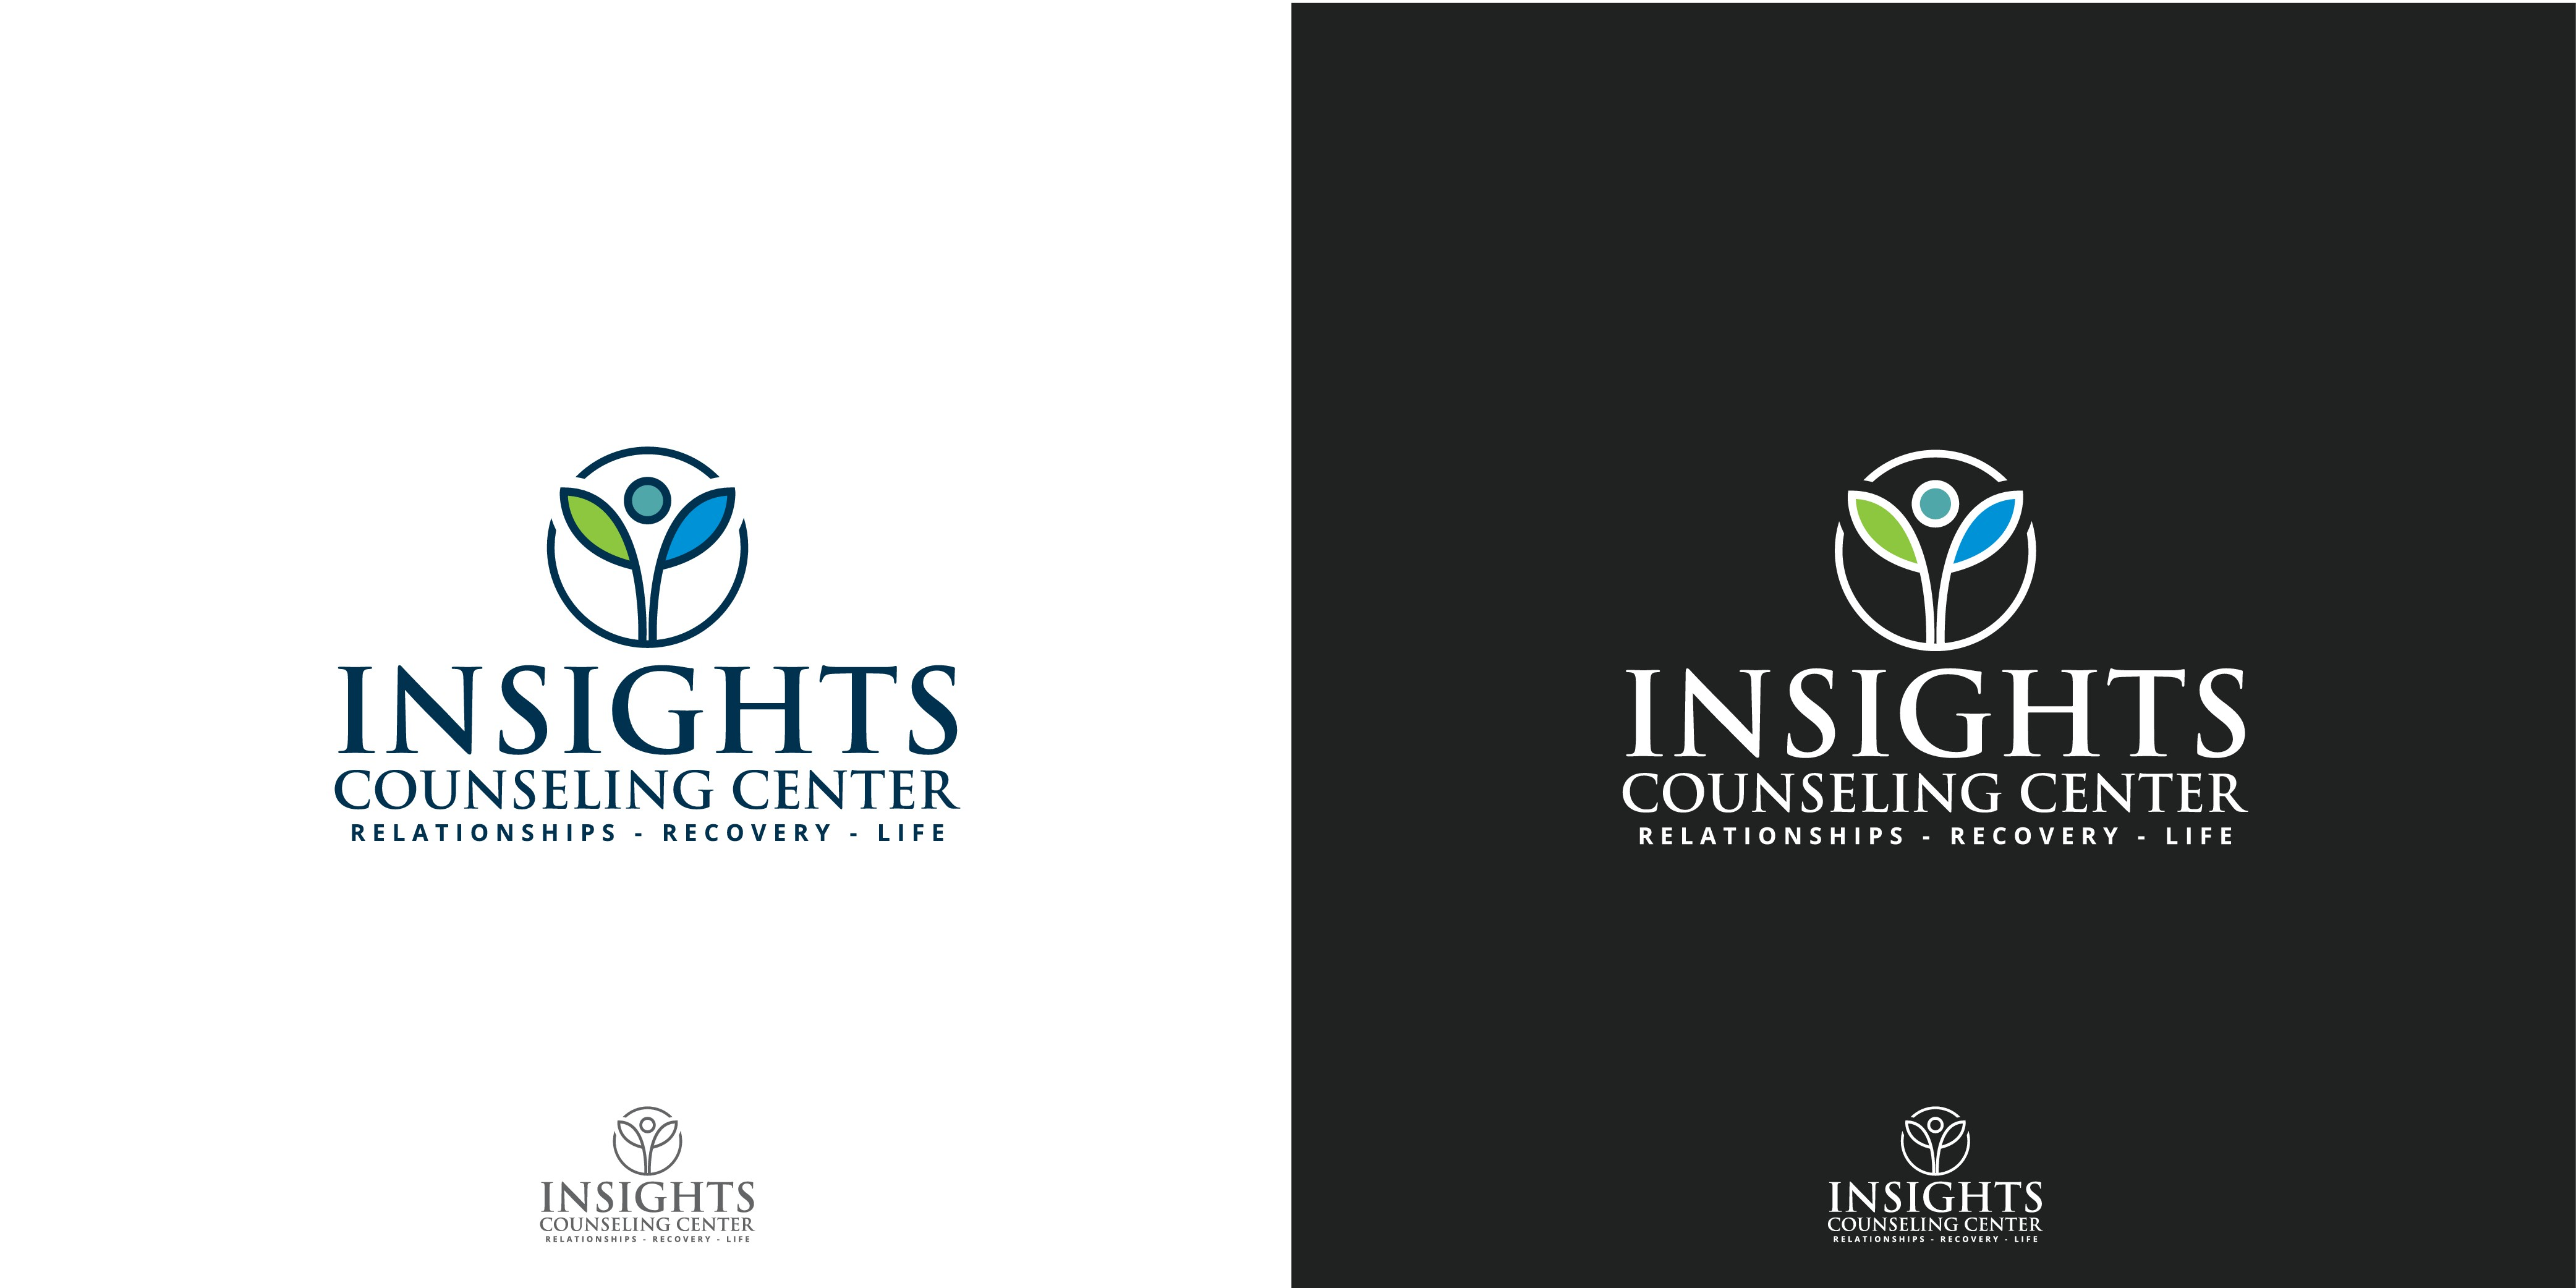 Create A Powerful New Logo for a Dynamic Counseling Practice!